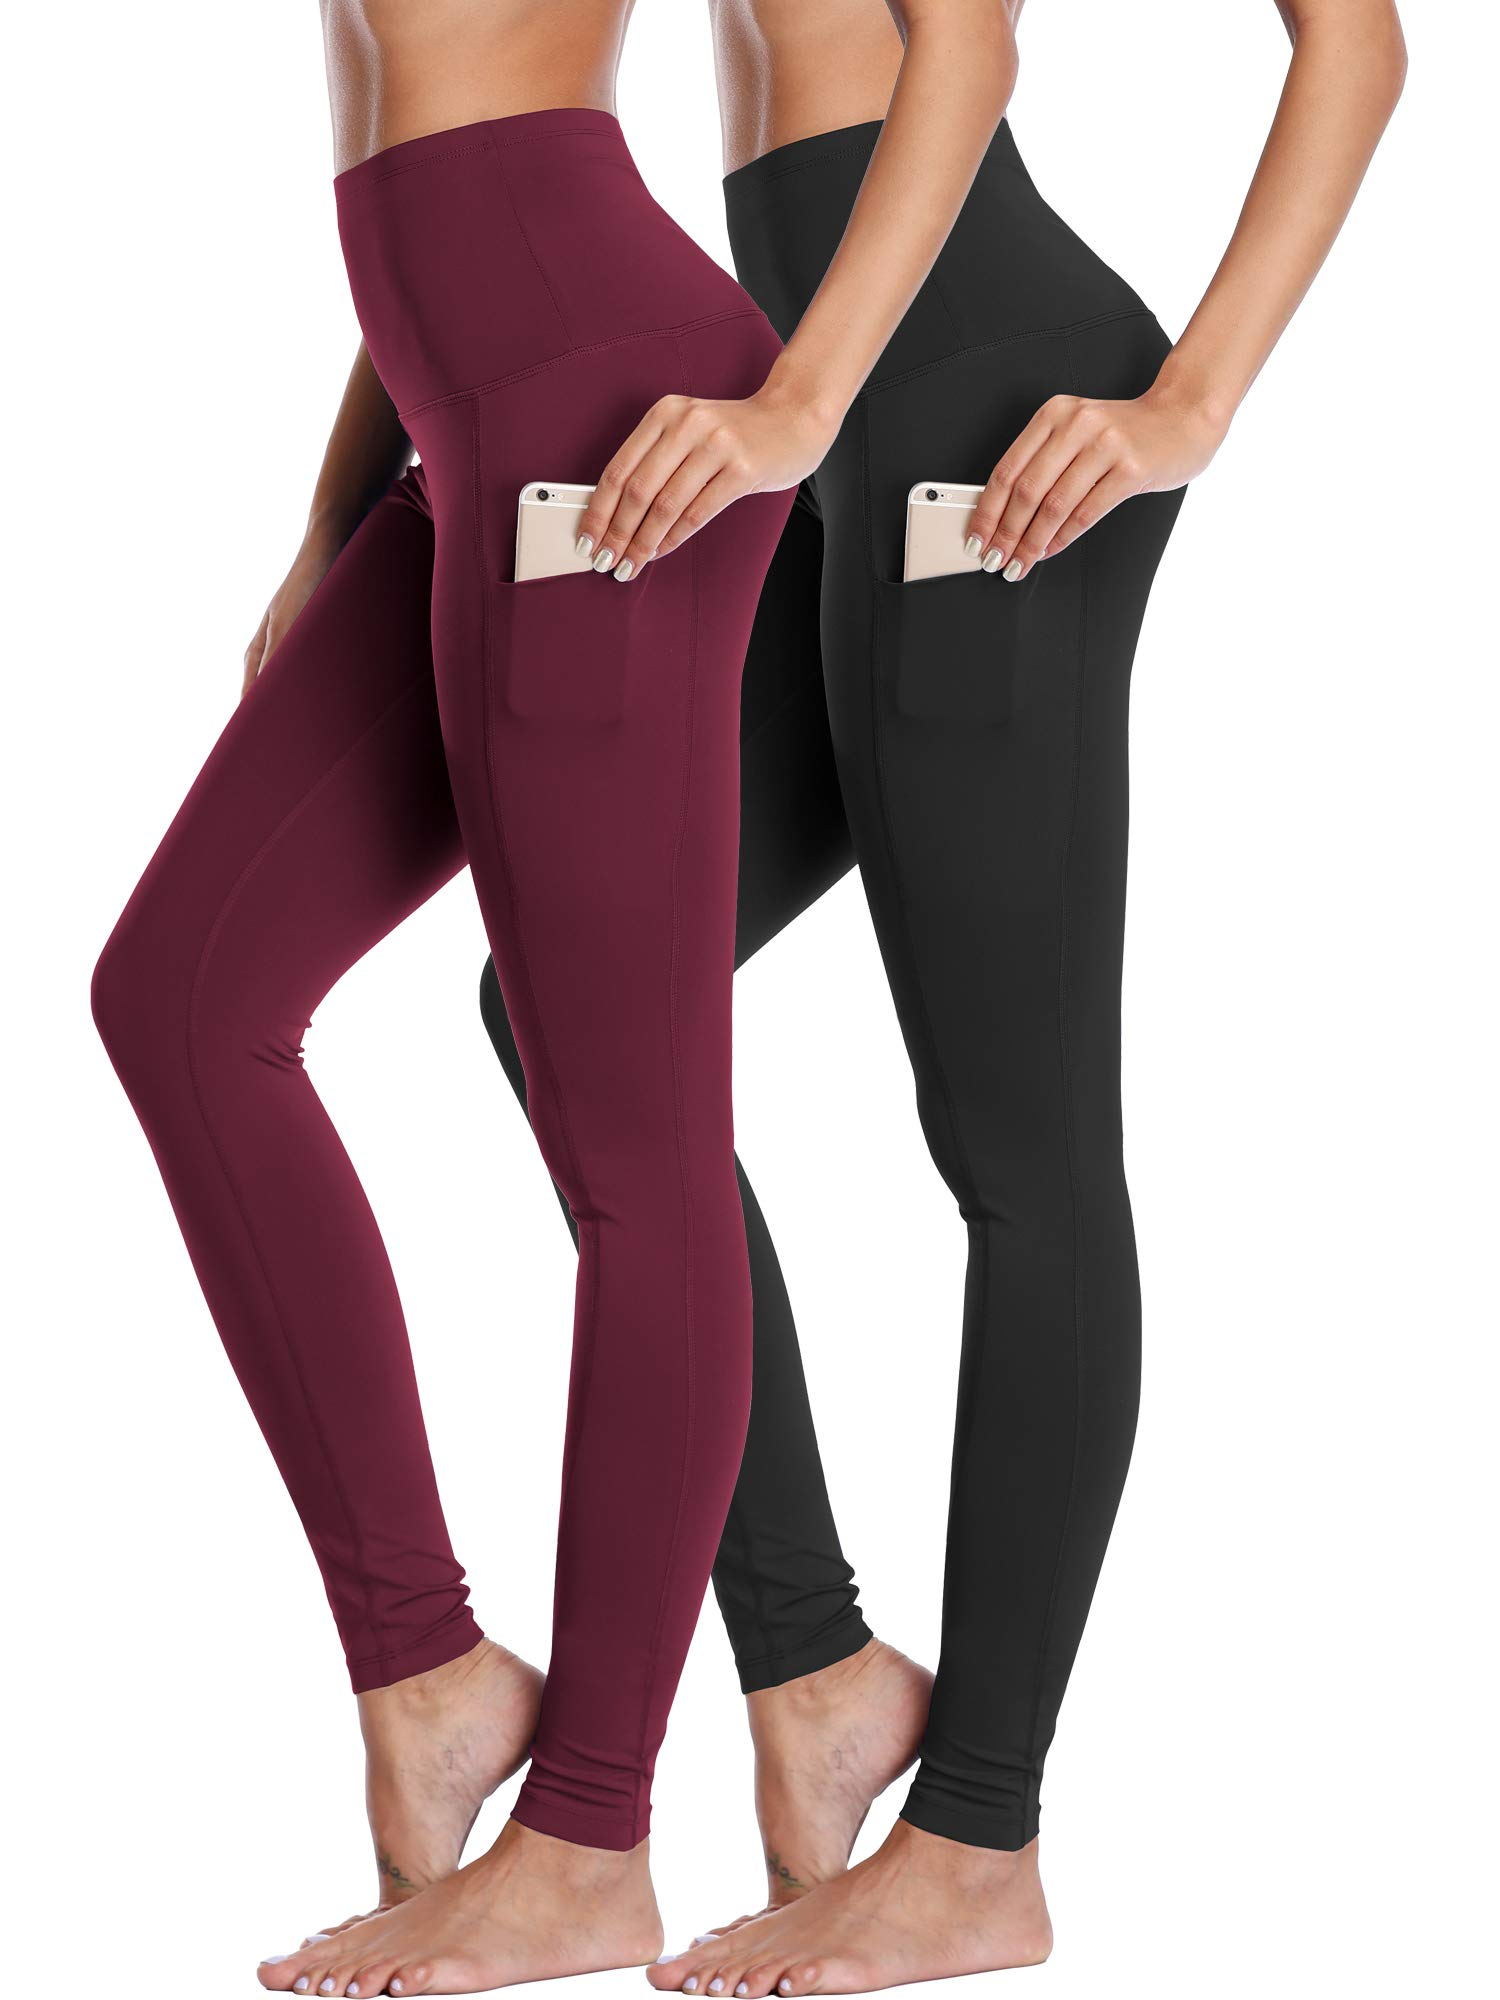 Neleus Women's 2 Pack Yoga Leggings Tummy Control Workout Yoga Pant,103,Black,Dark Red,M by Neleus